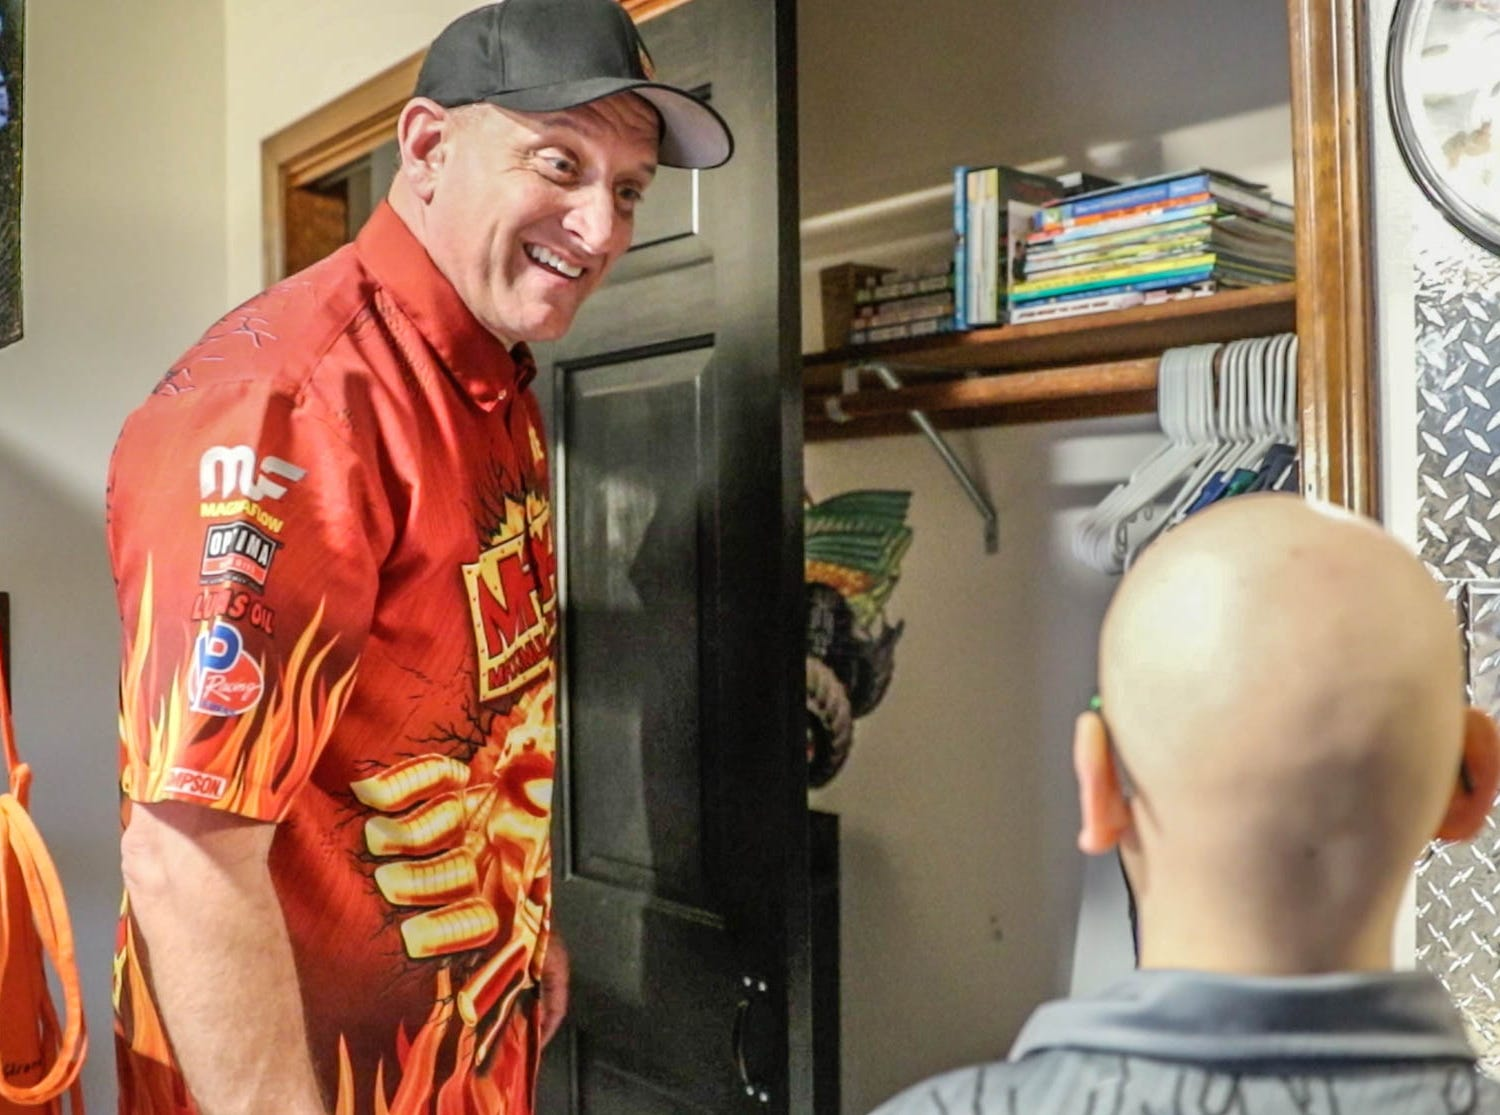 Maximum Destruction monster truck driver Tom Meents , left, shows James Egold, right, who just completed chemo therapy, his newly remodeled Monster Jam bedroom on Thursday, Feb. 7, 2019. The remodel was thanks to a team up by Monster Jam, Love Your Melon, and Home Depot.